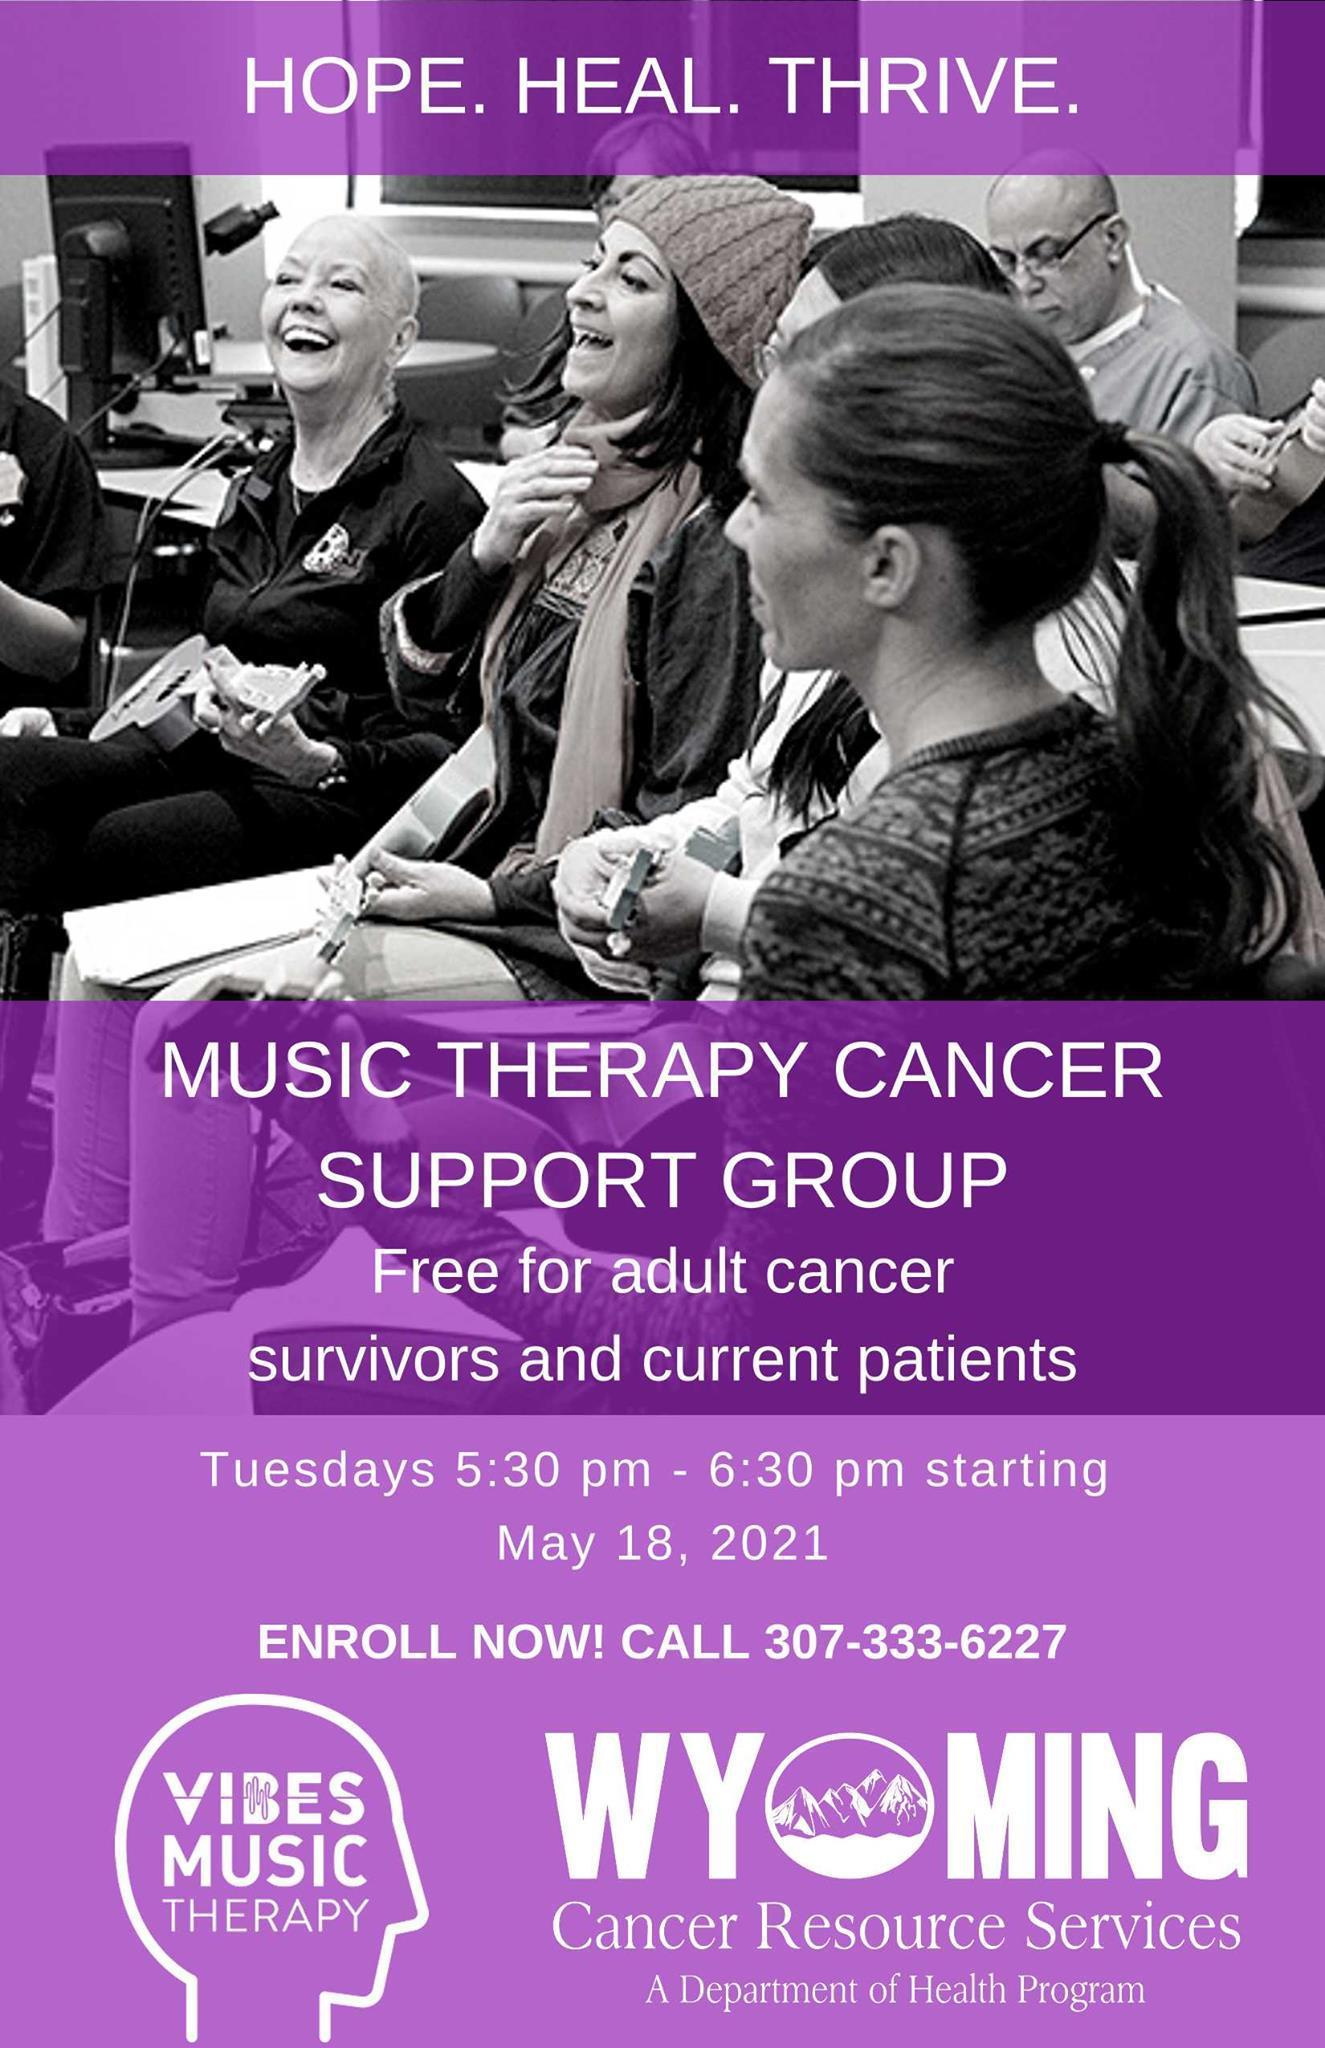 Music Therapy Cancer Support group flyer